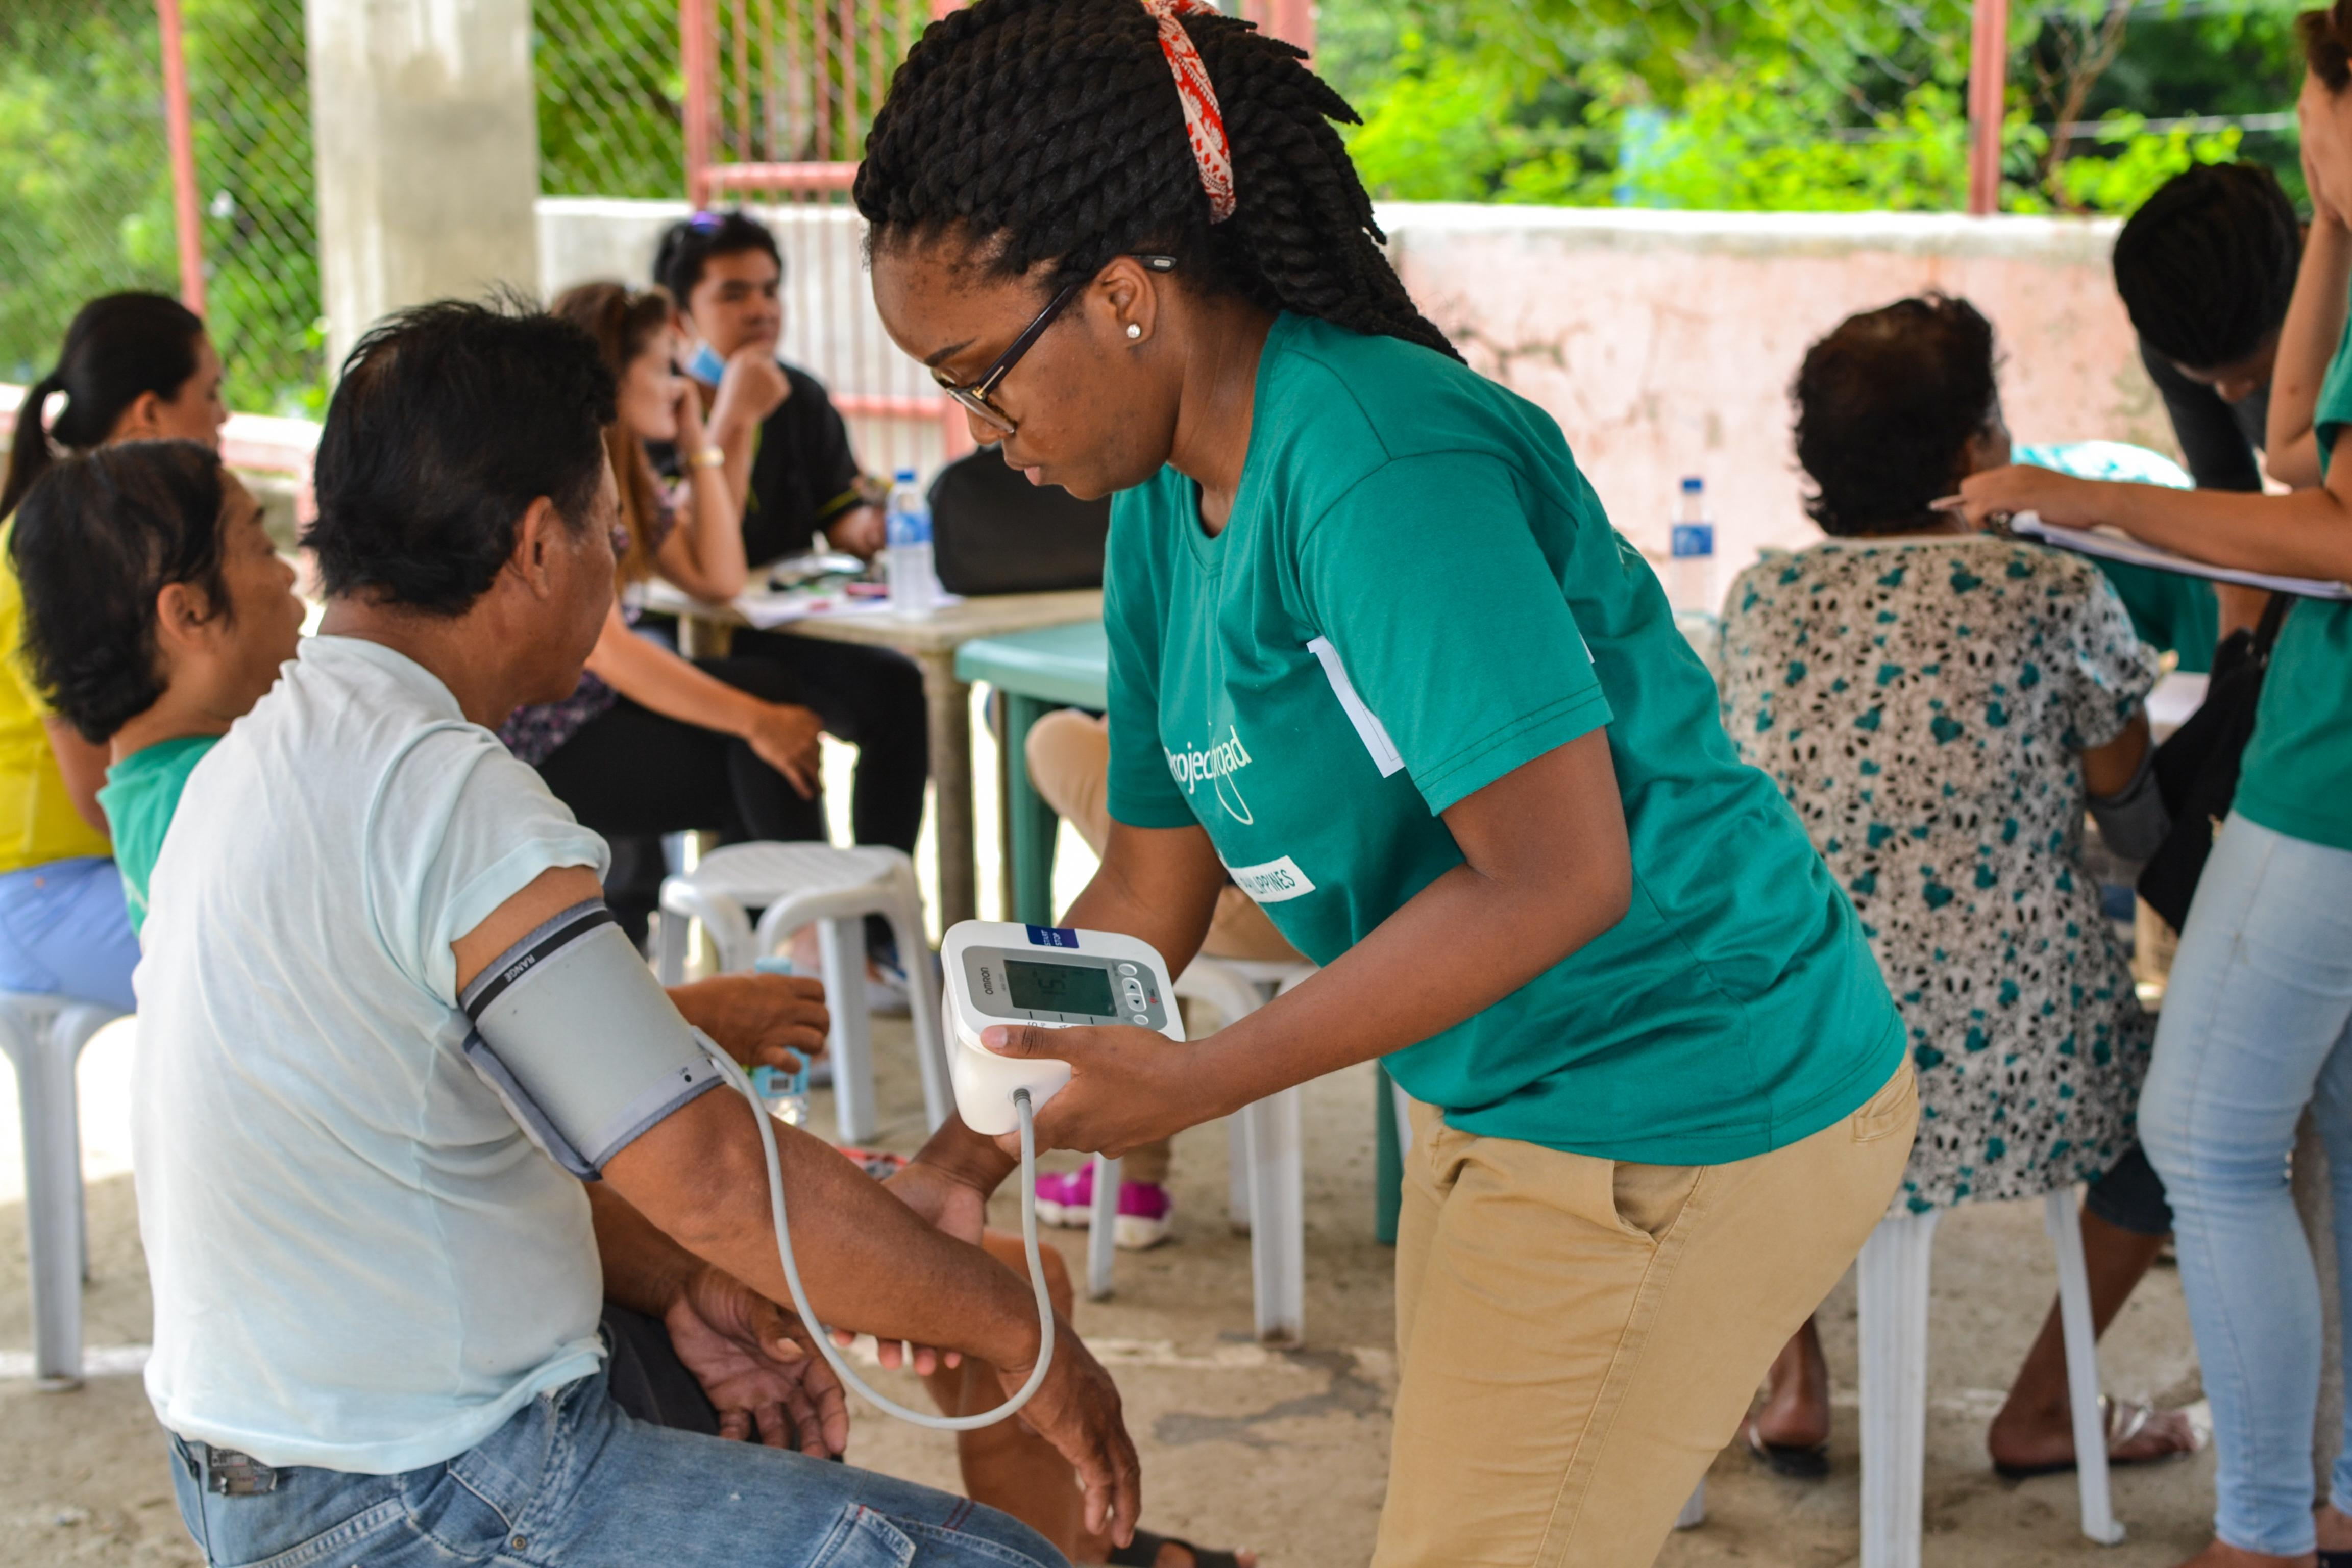 During an outreach, a student takes the blood pressure of a patient during her Public Health internship in the Philippines.